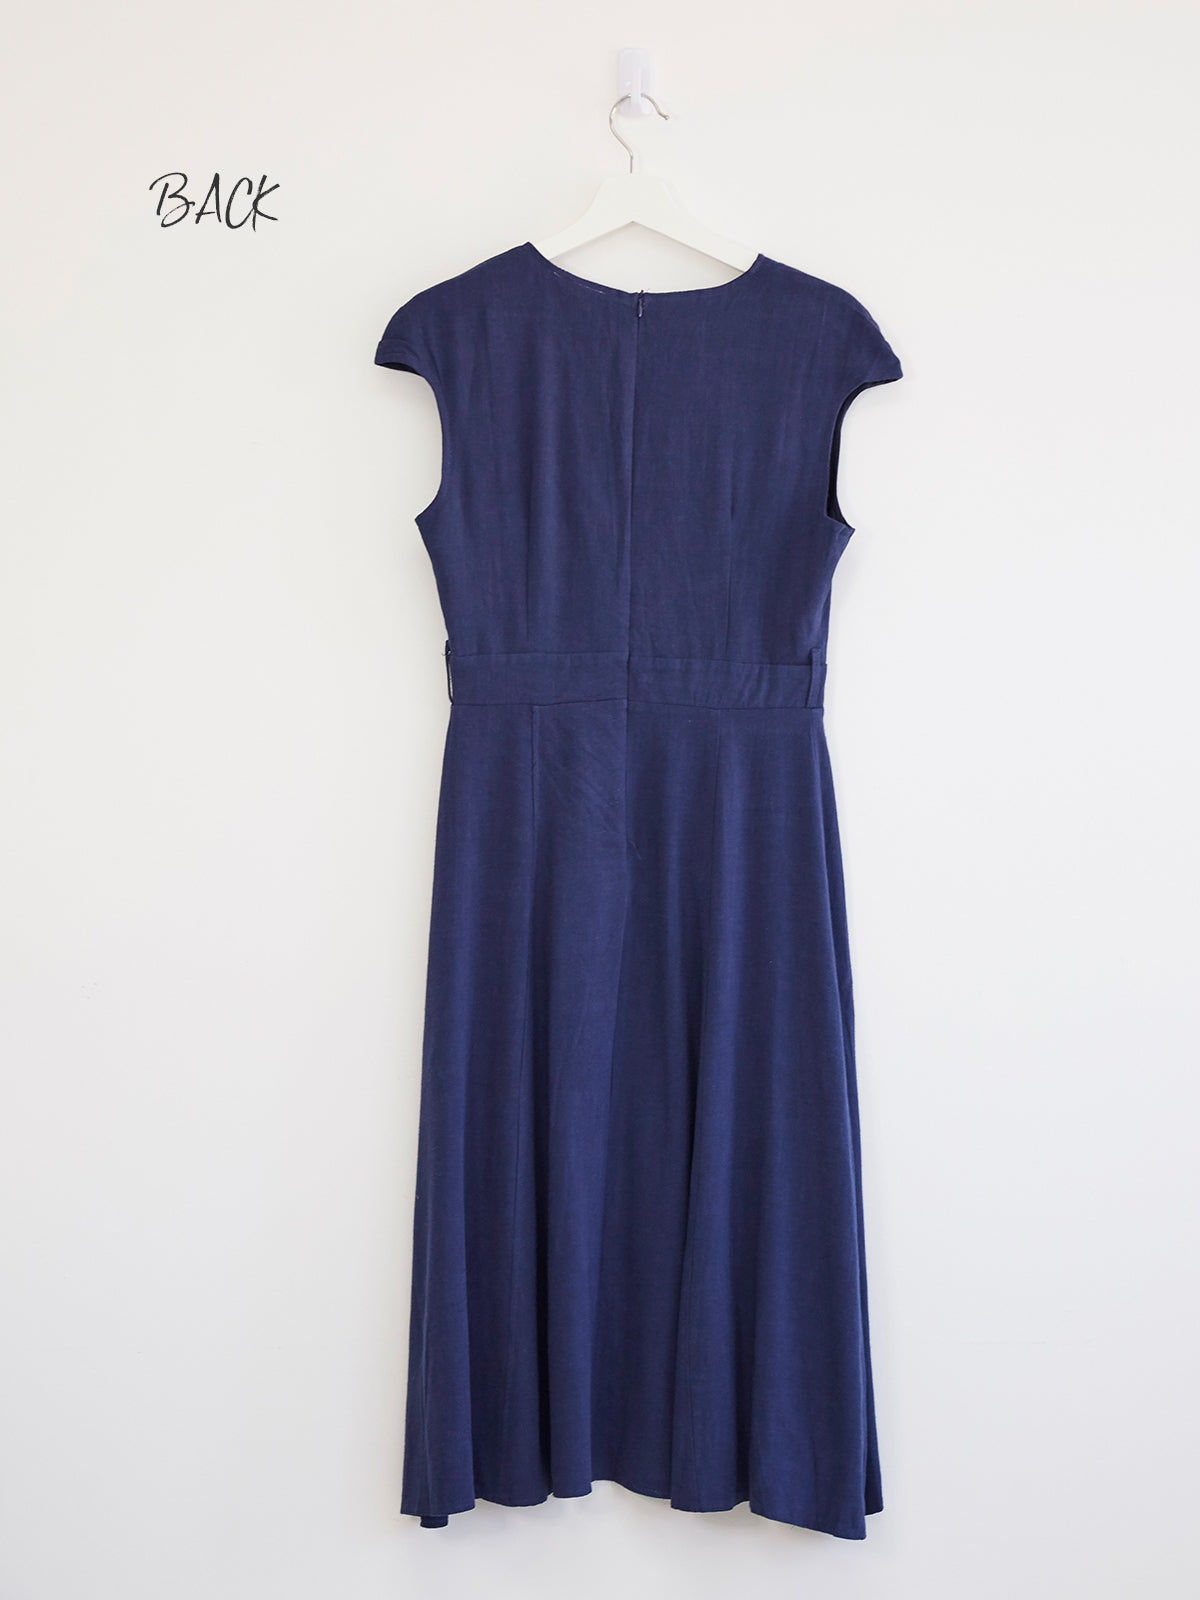 YOUR PERFECT DAY NAVY DRESS